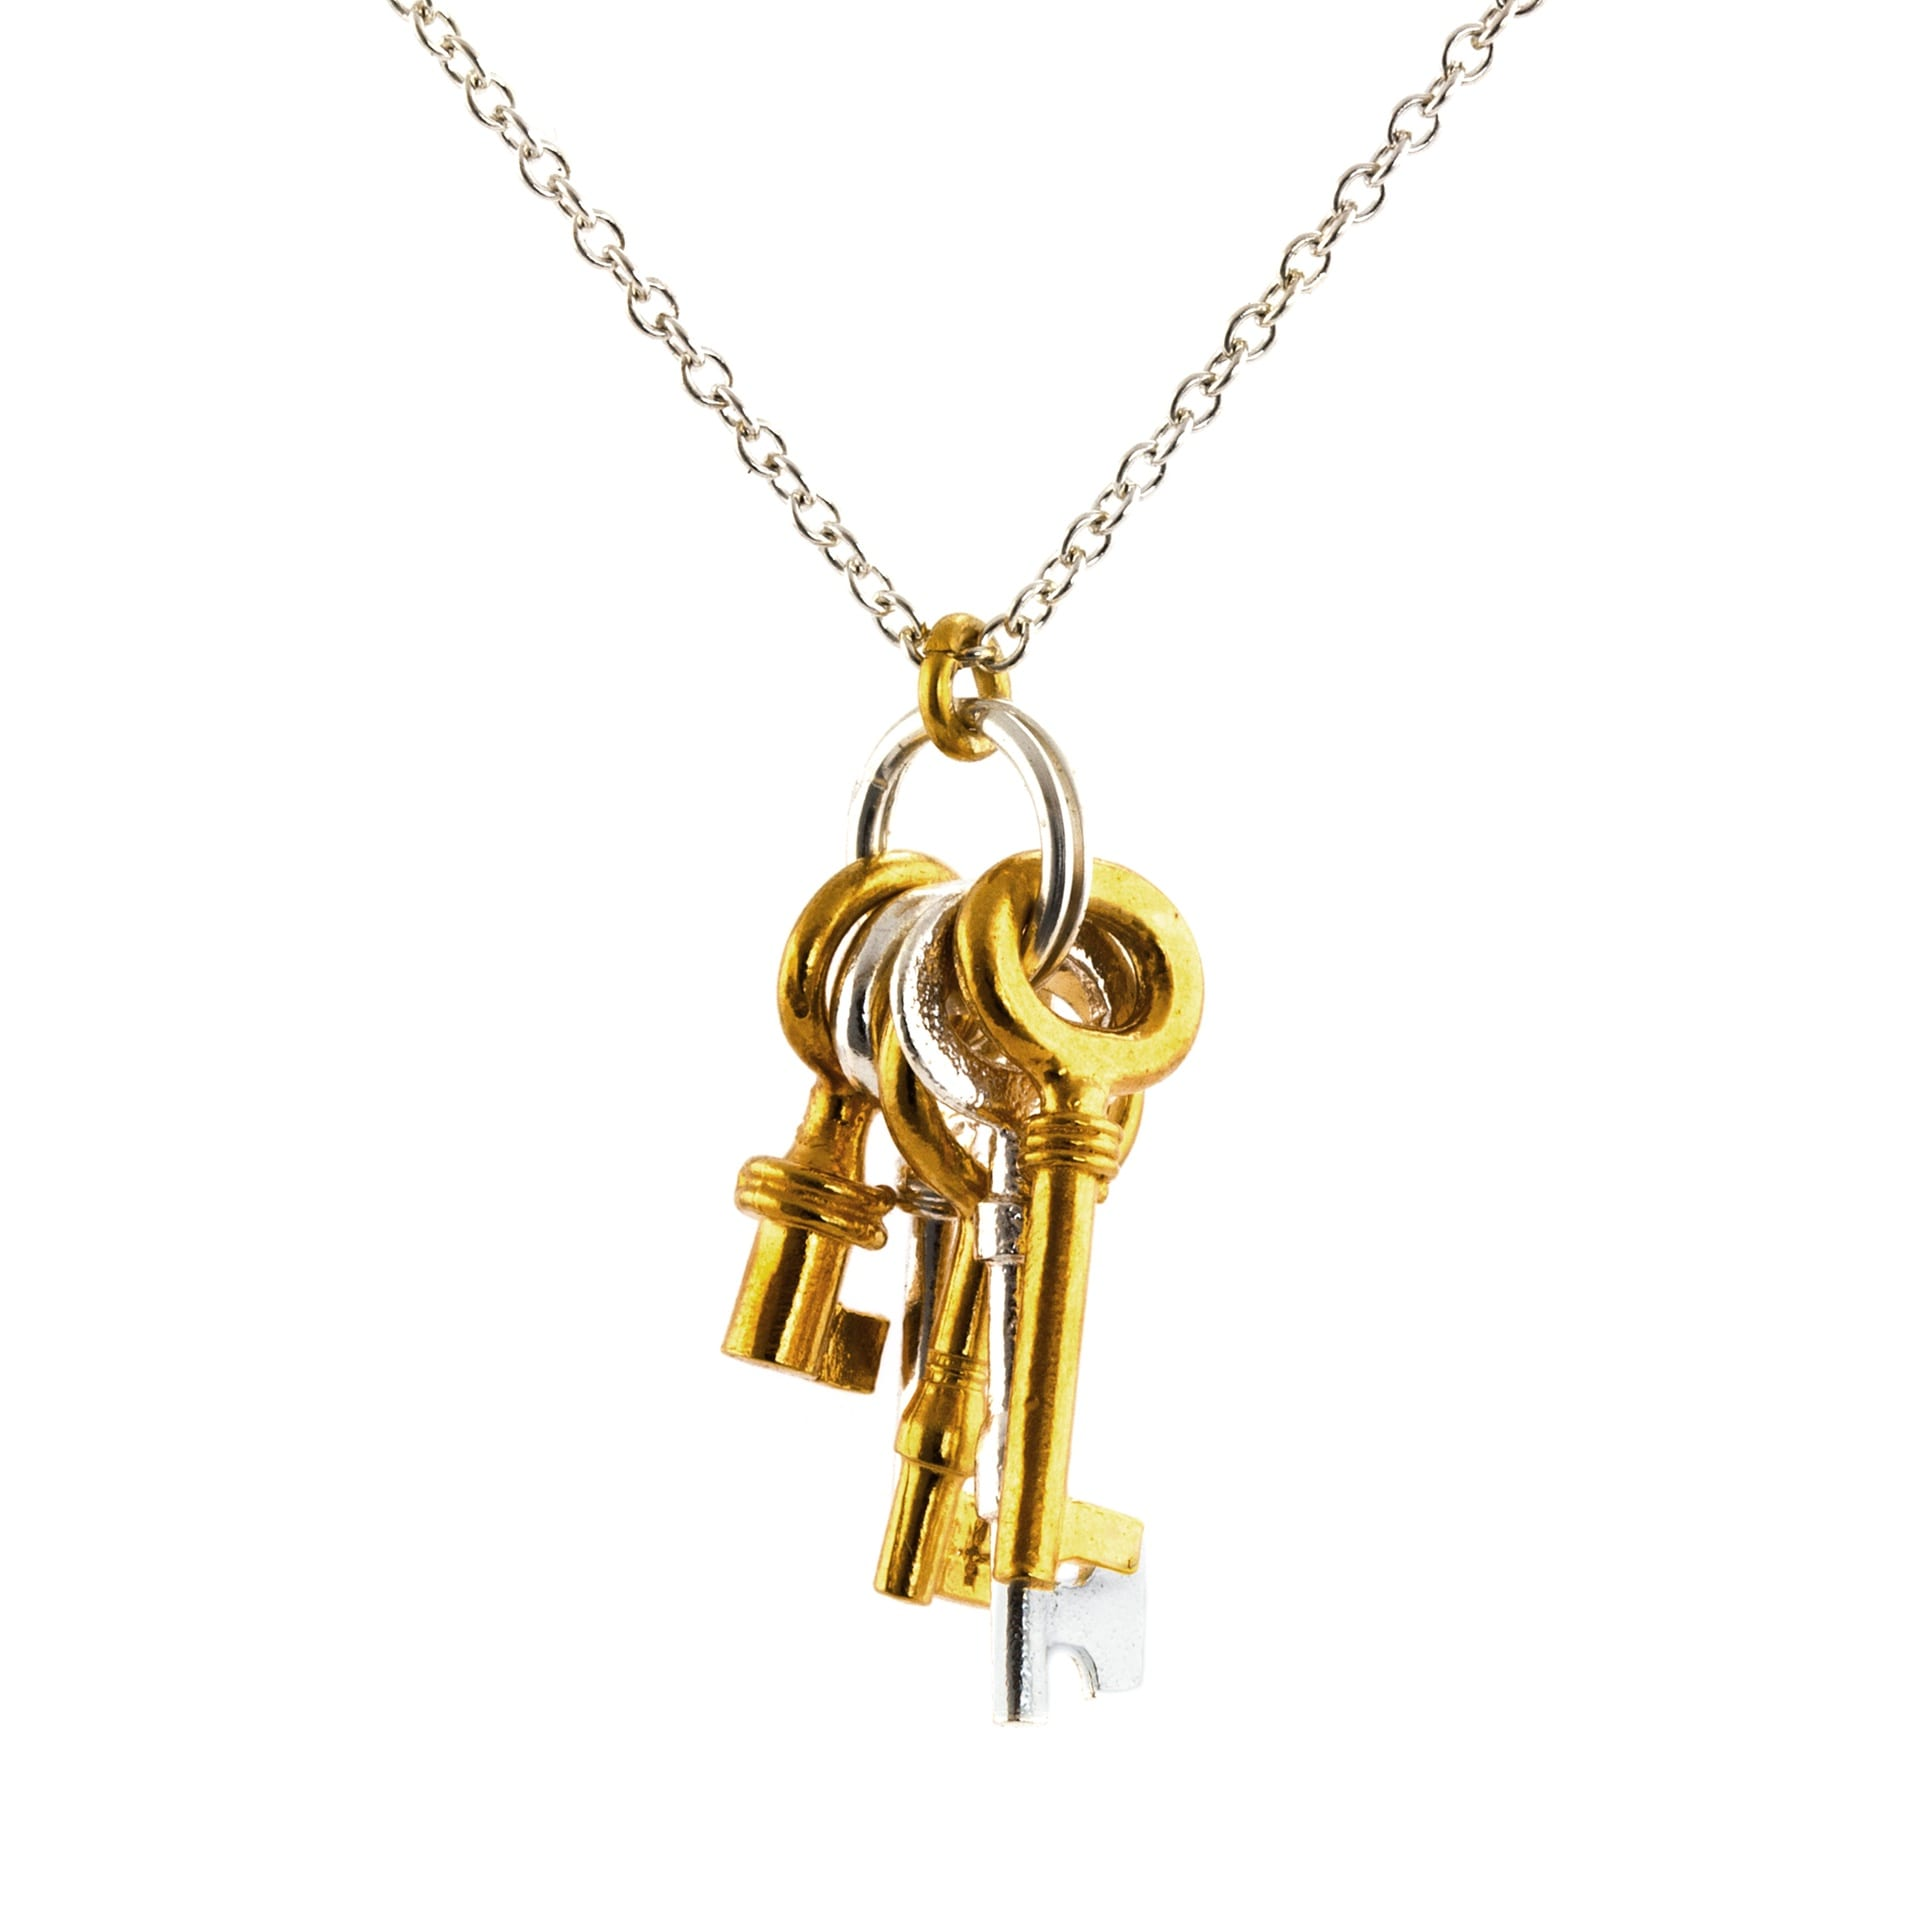 Alex Monroe luxury jewellery bunch of keys necklace